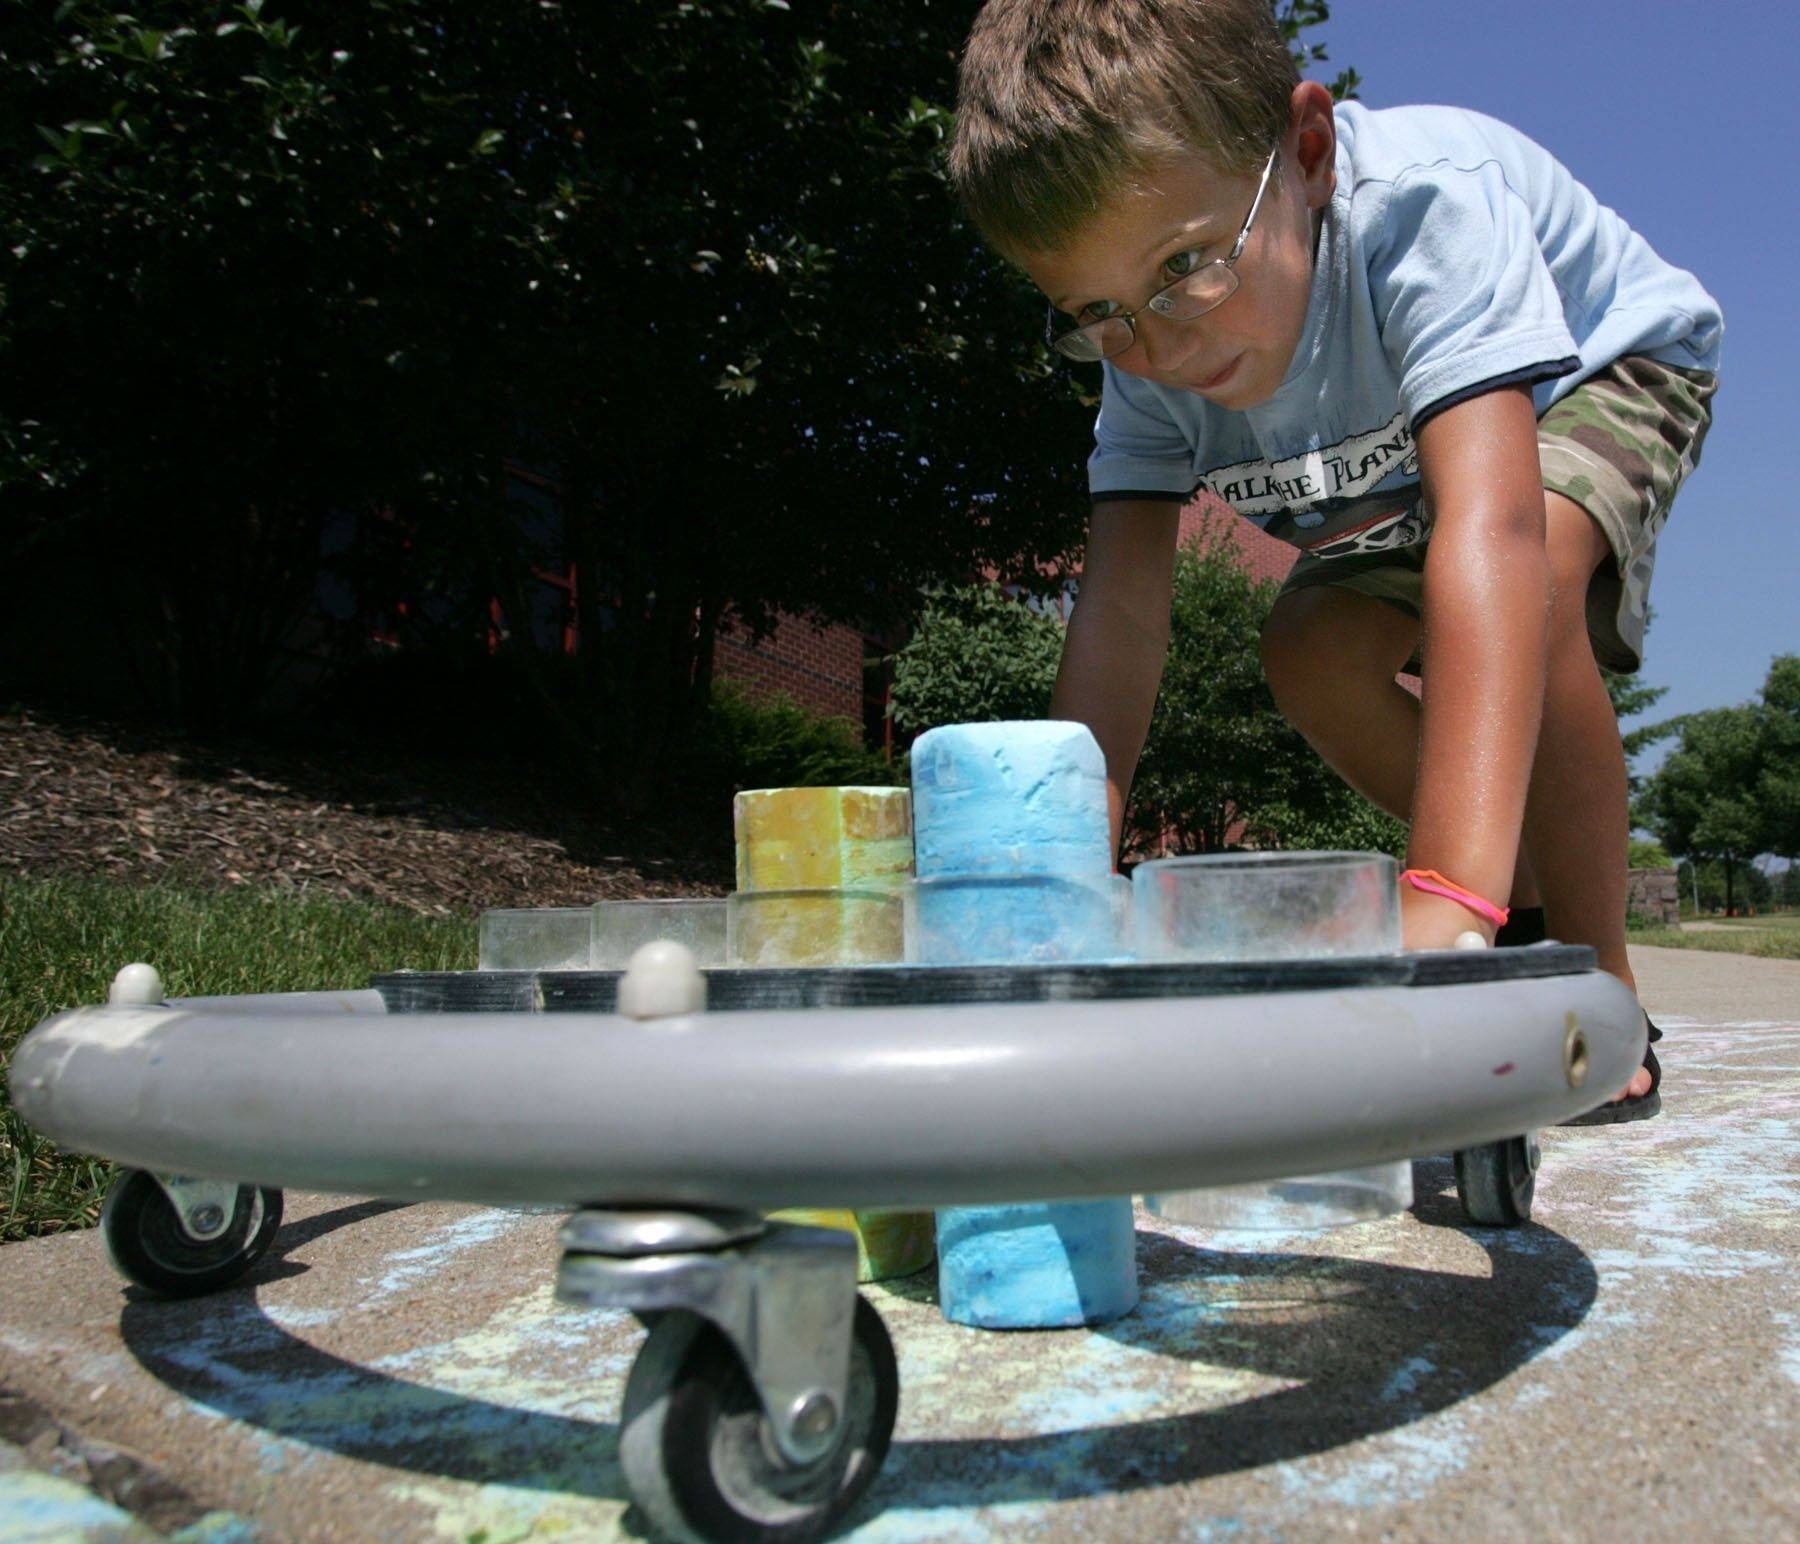 Dmitry Godlevsky, 7, tries out a sidewalk chalk drawing device designed for children who use wheelchairs. Staff from the Northwest Special Recreation Association worked with children this week.